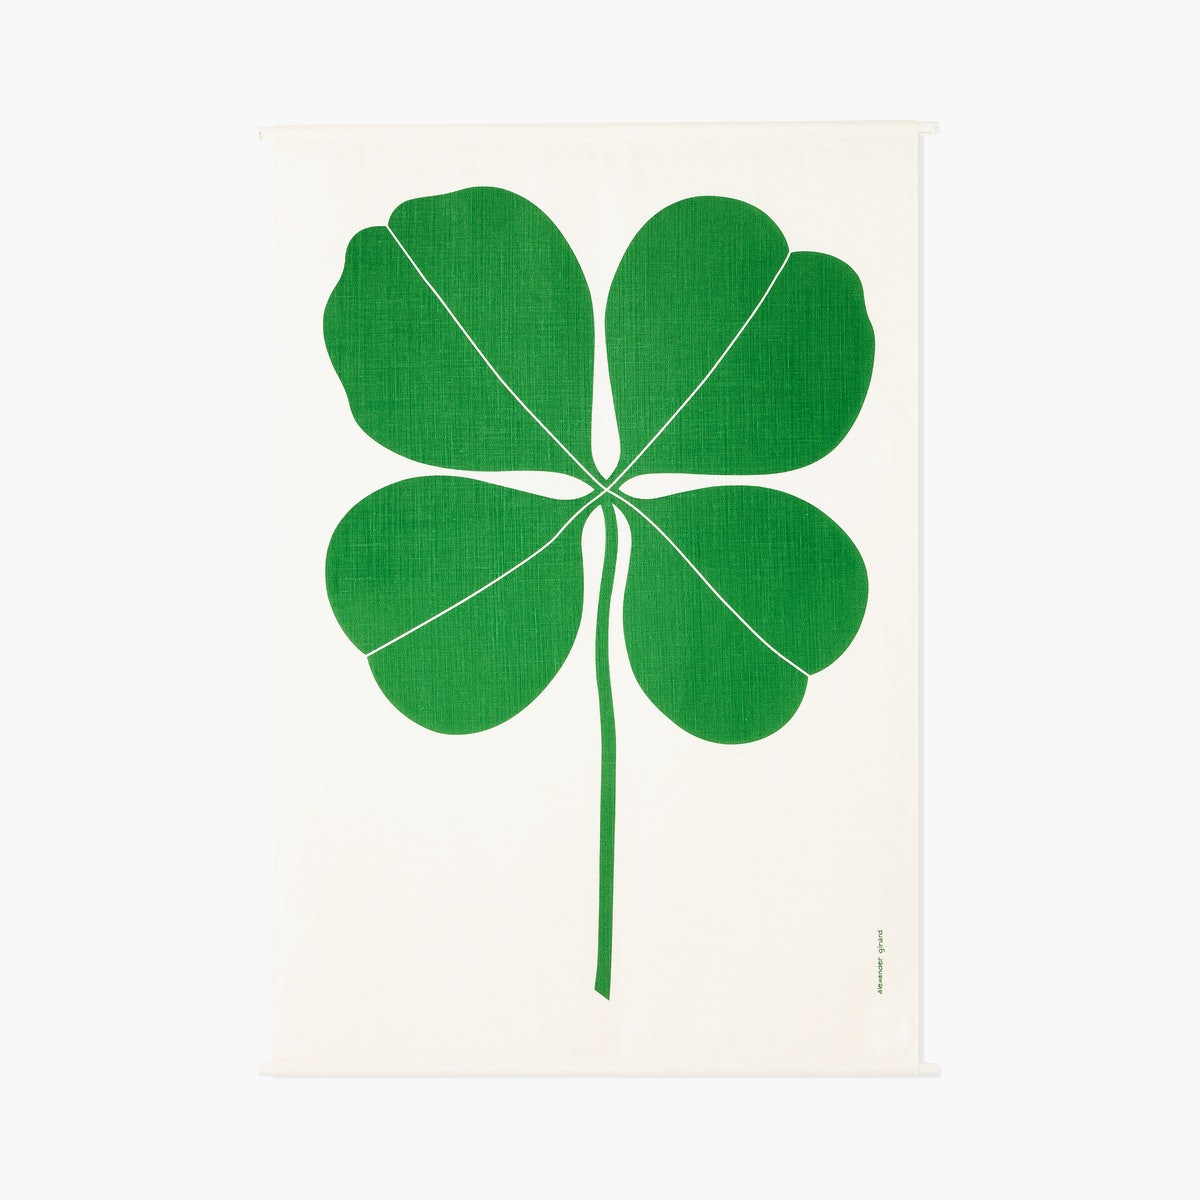 """Four Leaf Clover"" by Alexander Girard"